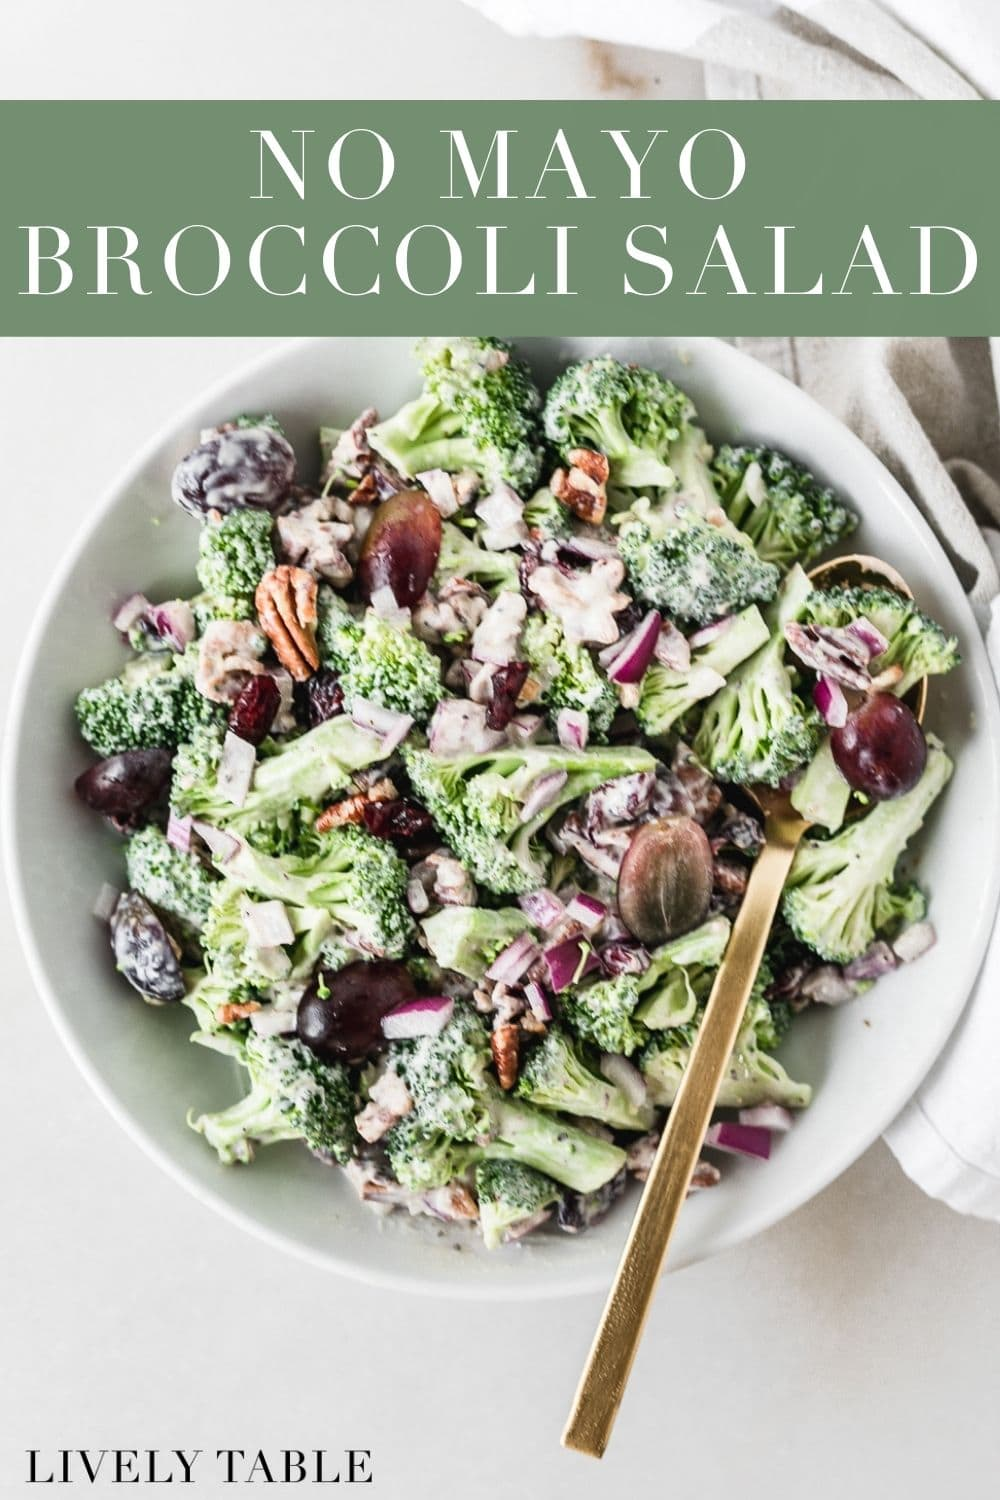 This no-mayo broccoli salad is a delicious and healthy version of the classic summer broccoli salad, but made with a Greek yogurt based dressing instead of mayonnaise. It's the perfect side dish for summer BBQs and cookouts! #glutenfree #broccolisalad #broccoli #salad #nomayosalad #healthyrecipes #makeahead #easysalad #healthysidedish